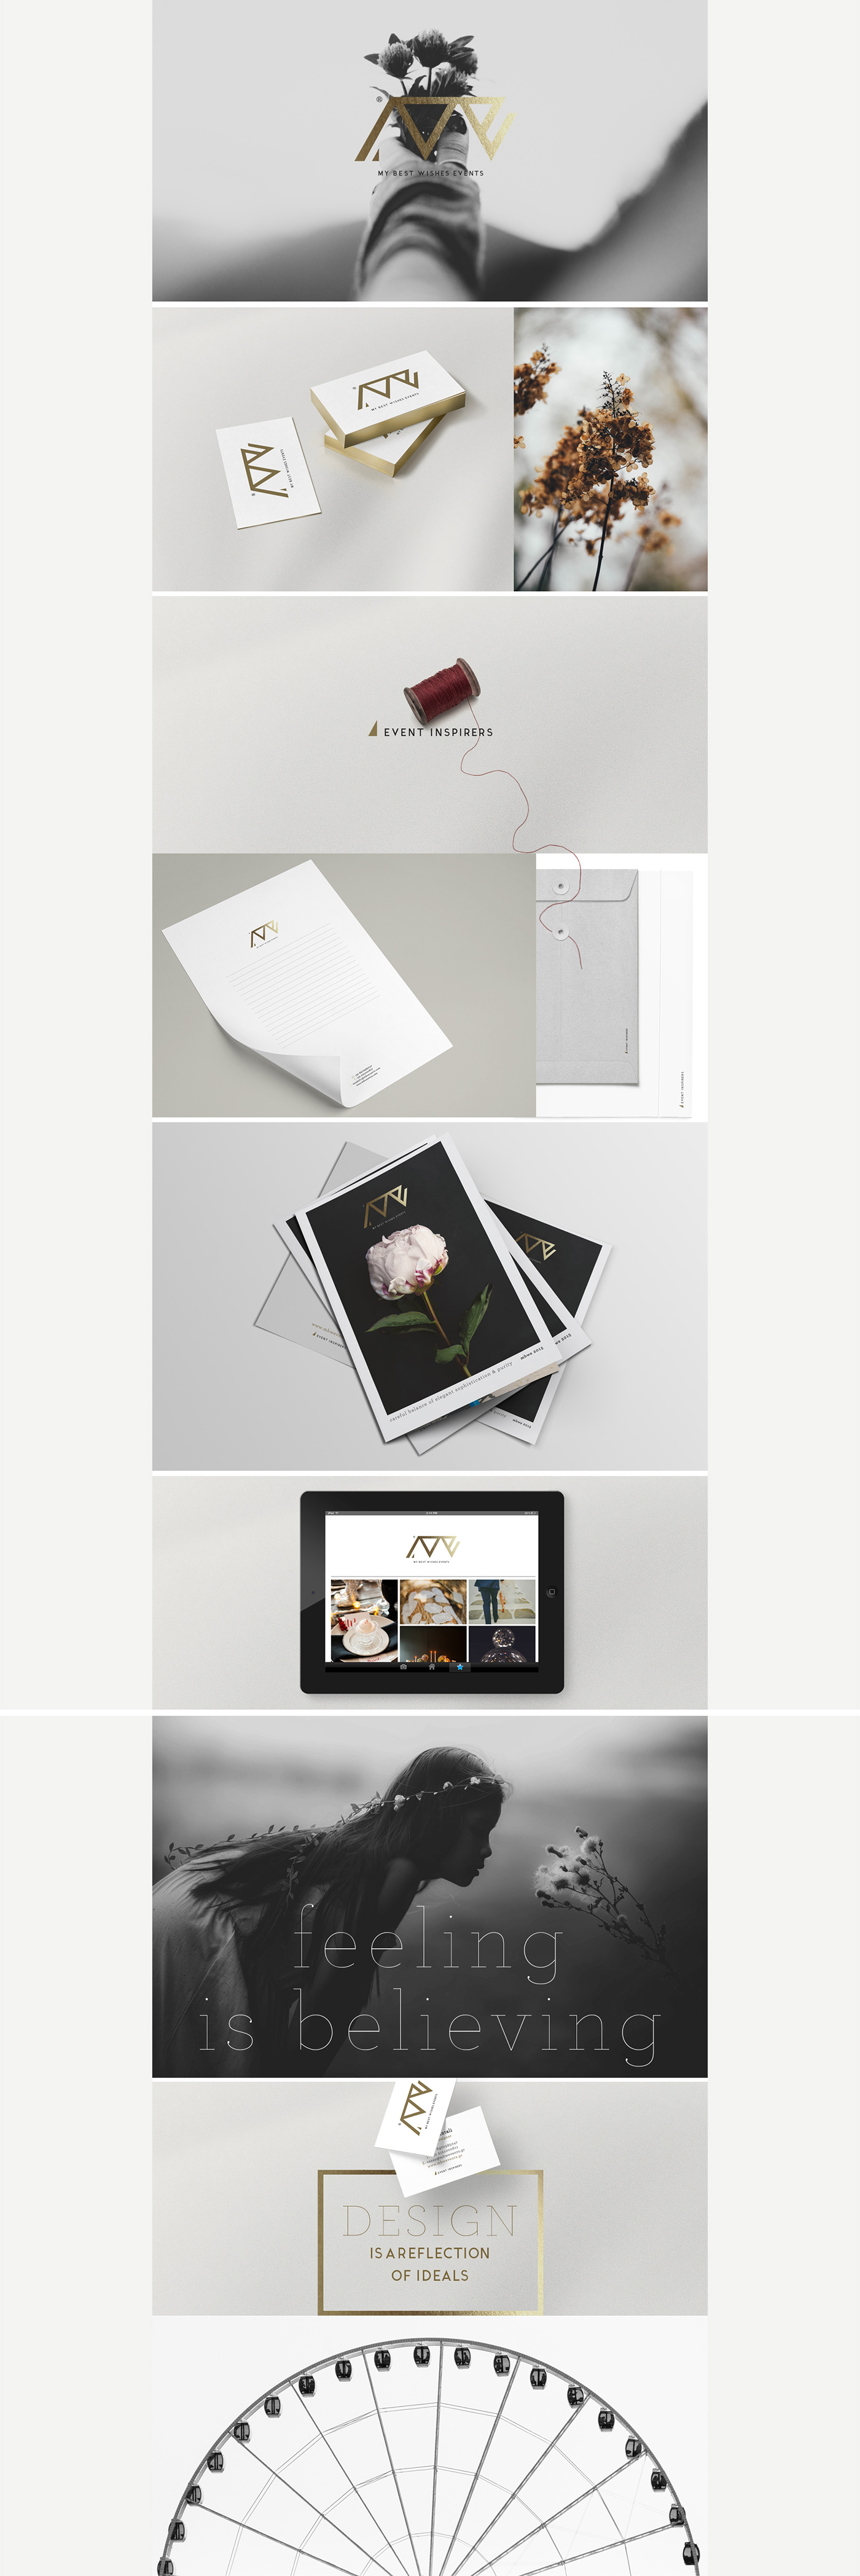 event planning corporate social Private wedding concept identity Greece minimal chic event inspirers